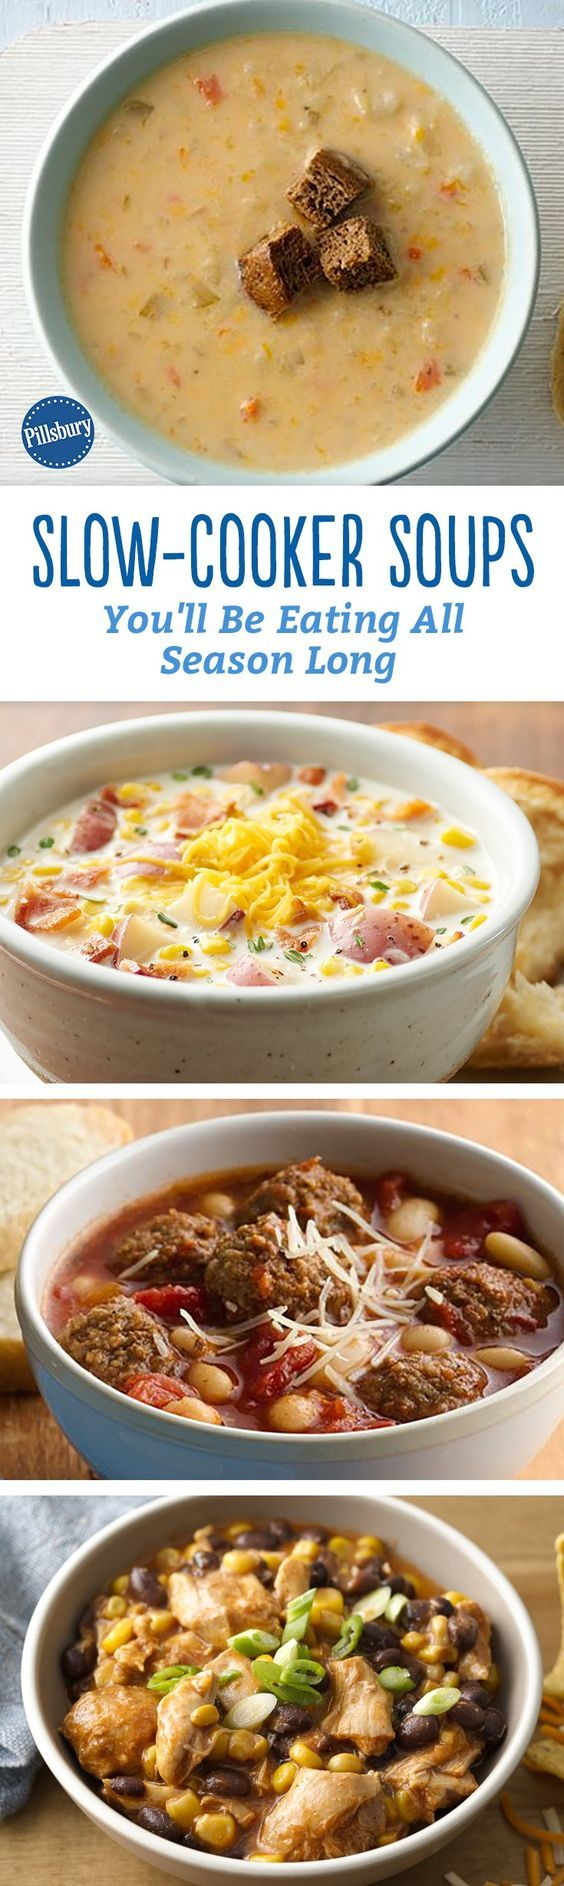 You know what we love more than a bowl of steaming, heart-warming soup? A bowl of steaming, heart-warming soup that practically makes itself. Introducing: our favorite slow-cooker soups that you can eat until it warms back up!